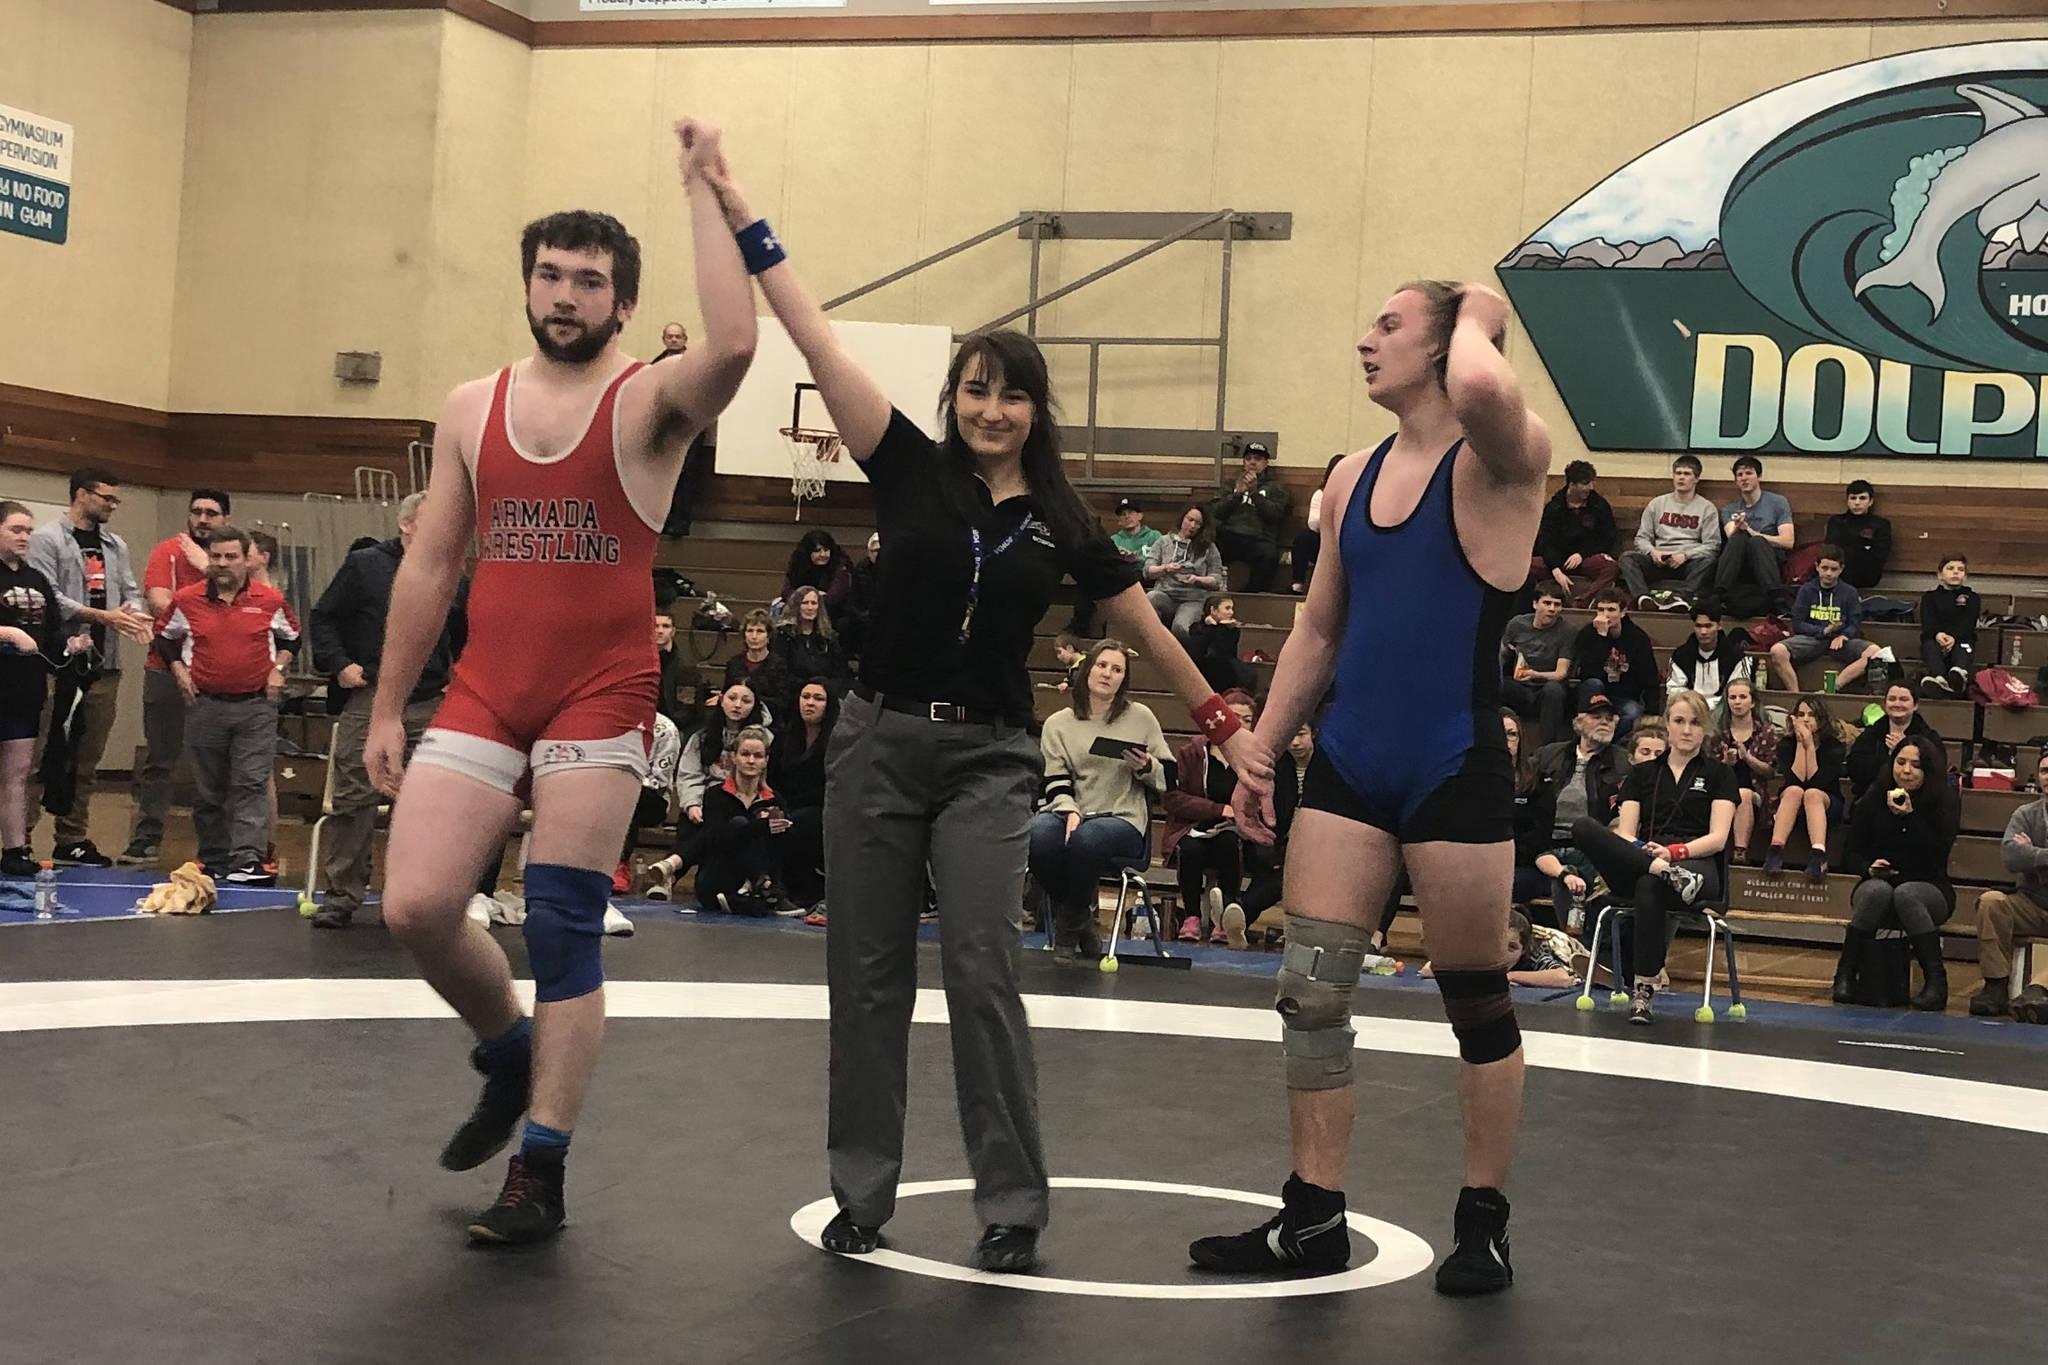 Scott Coulthart (in red) went undefeated last weekend to win gold in his division. (SUBMITTED PHOTO)